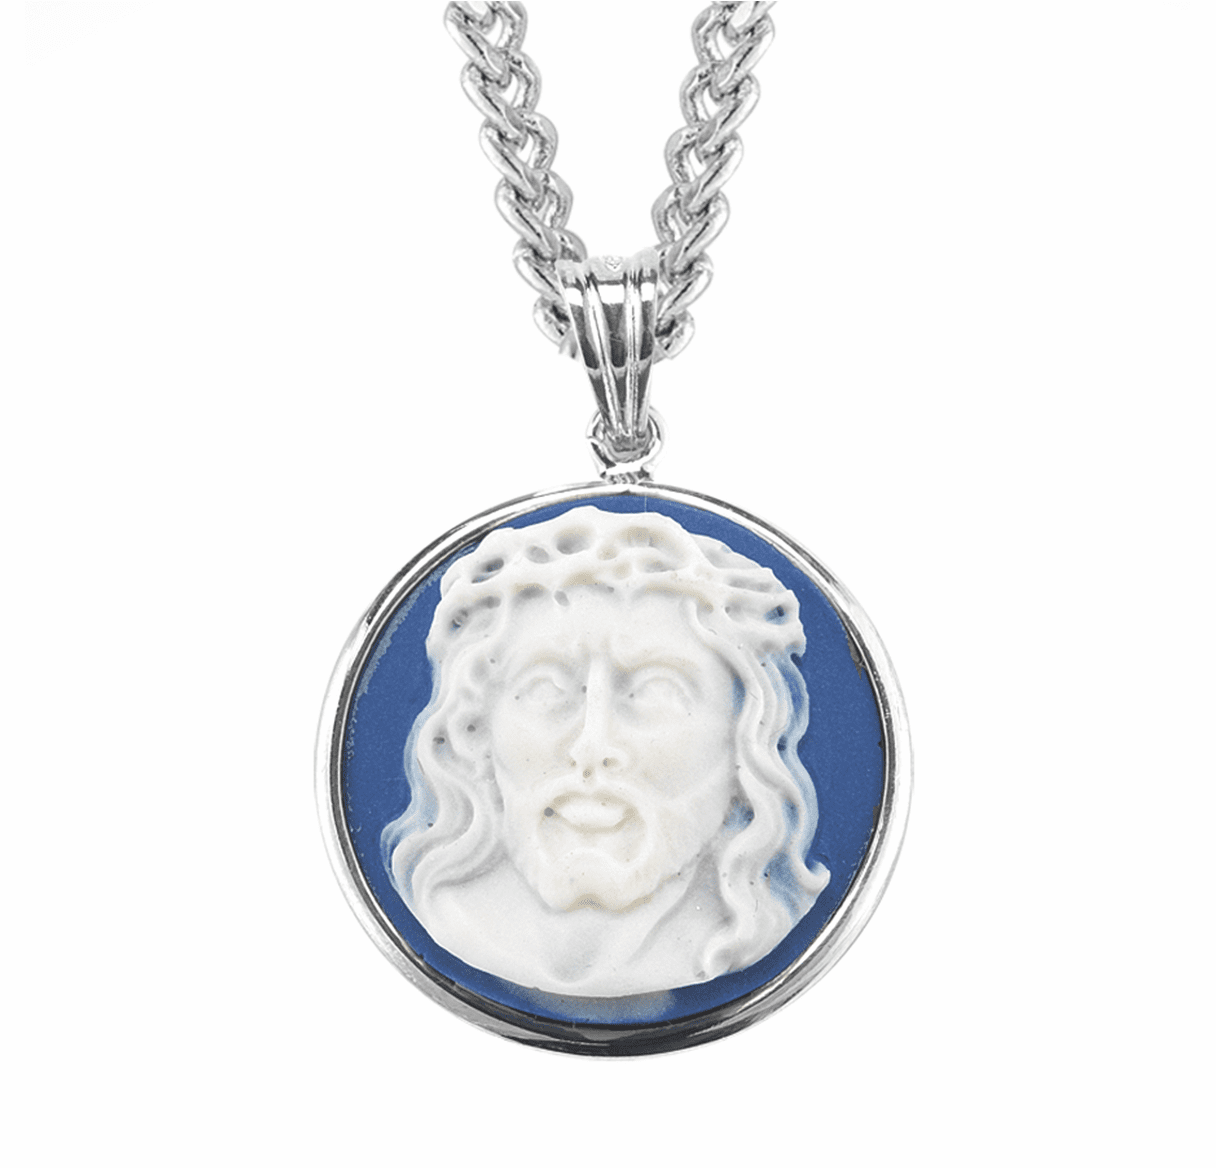 HMH Religious Cameo Christian Necklaces